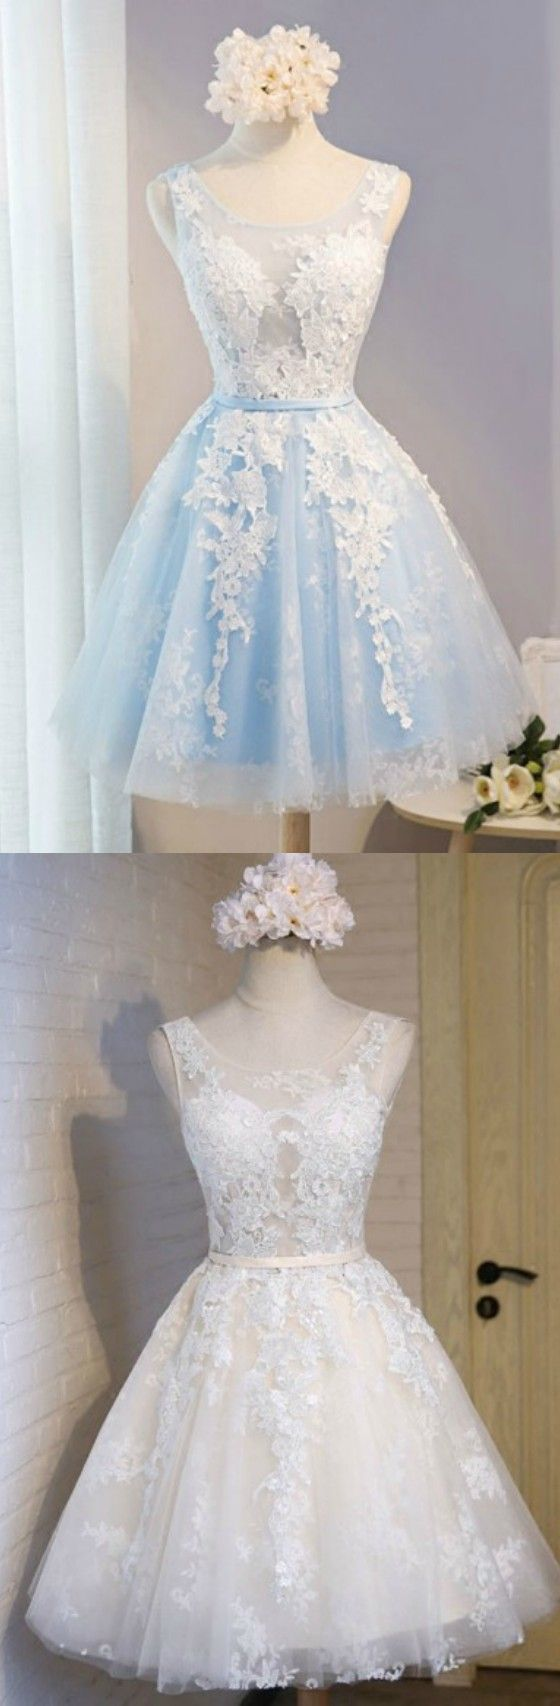 Blue/Ivory A-line Scoop Neck Short Tulle Homecoming Dress With Appliques Lace